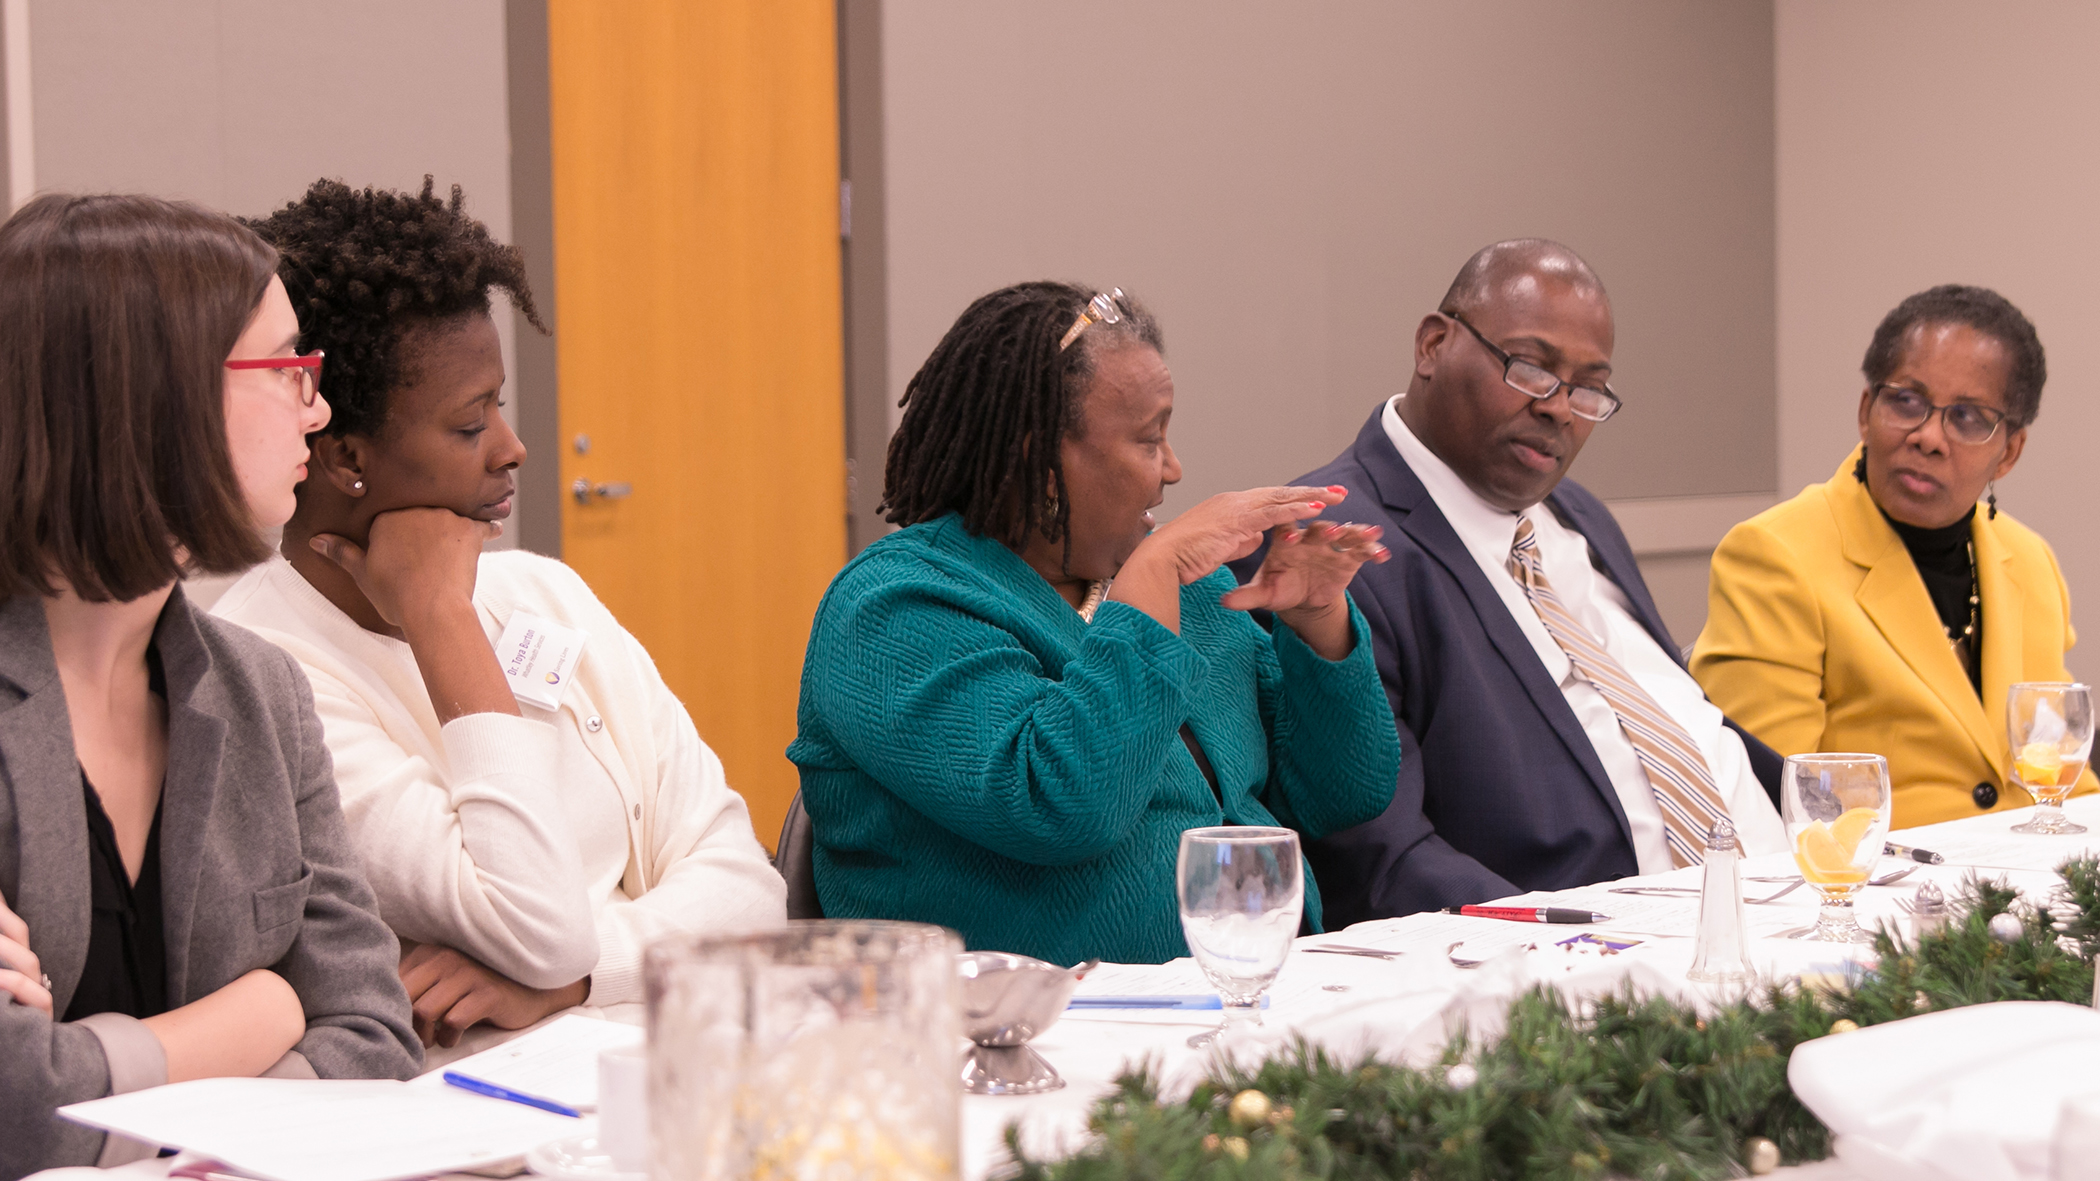 Dr. Pamela Payne Foster, center, makes a point about the design of a new Saving Lives Academy during the final Saving Lives meeting of 2017.